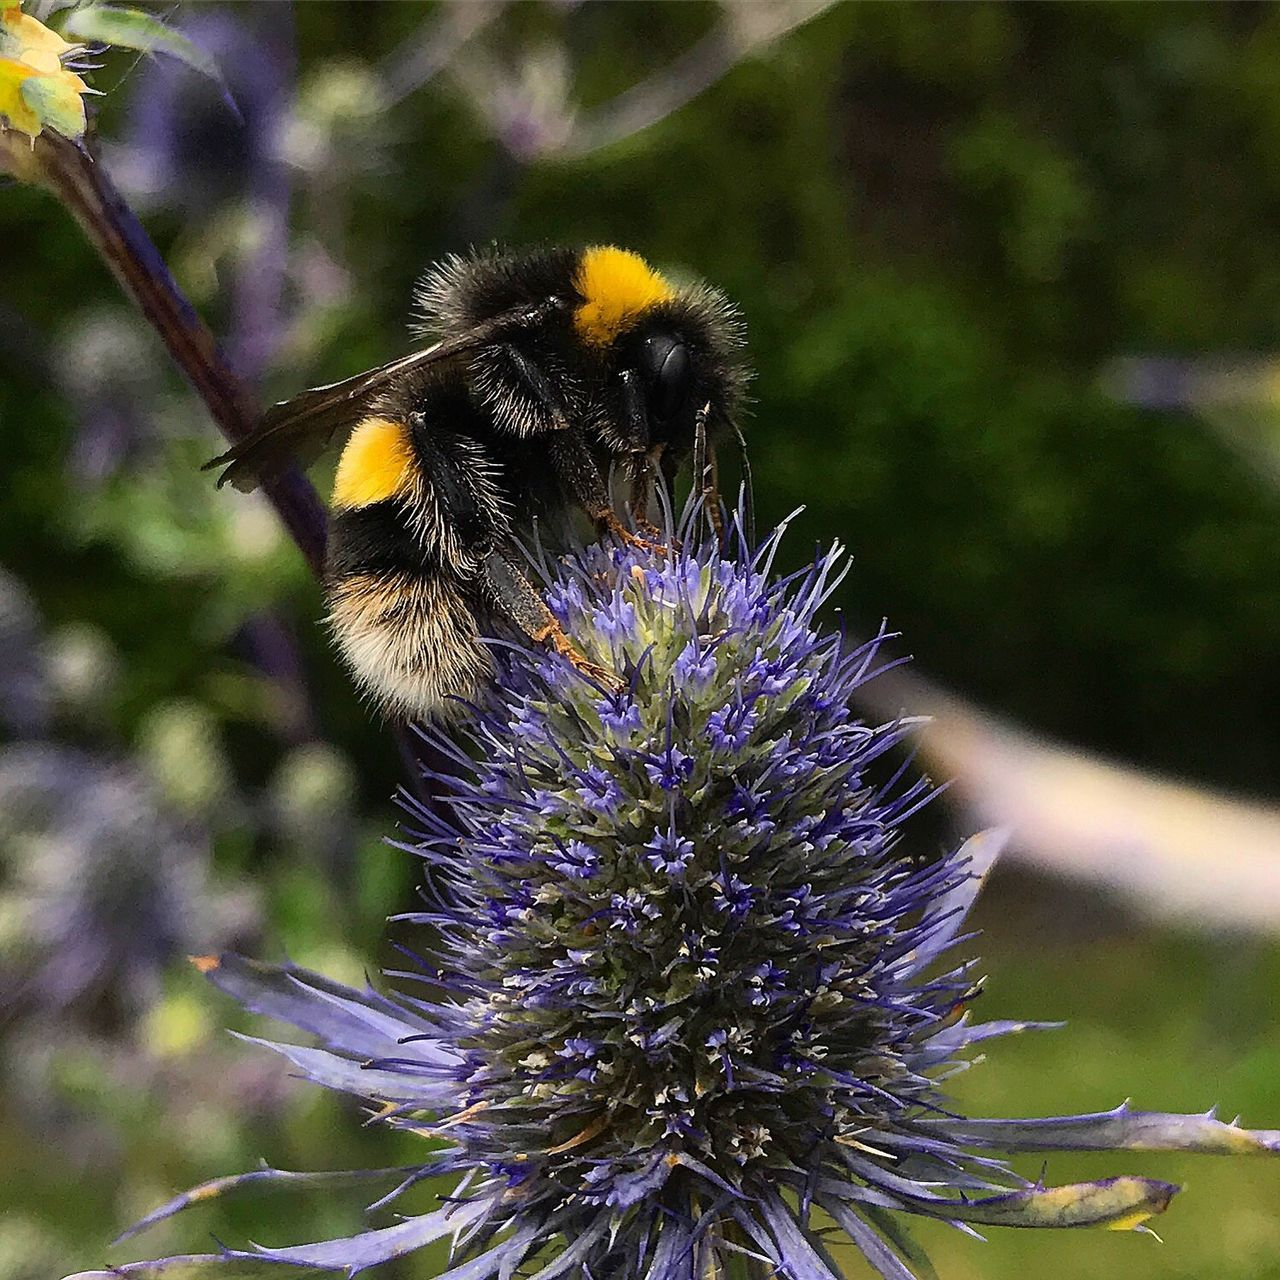 flower, purple, nature, bee, insect, fragility, outdoors, growth, day, animal themes, beauty in nature, plant, petal, one animal, focus on foreground, pollination, animals in the wild, no people, freshness, flower head, bumblebee, close-up, thistle